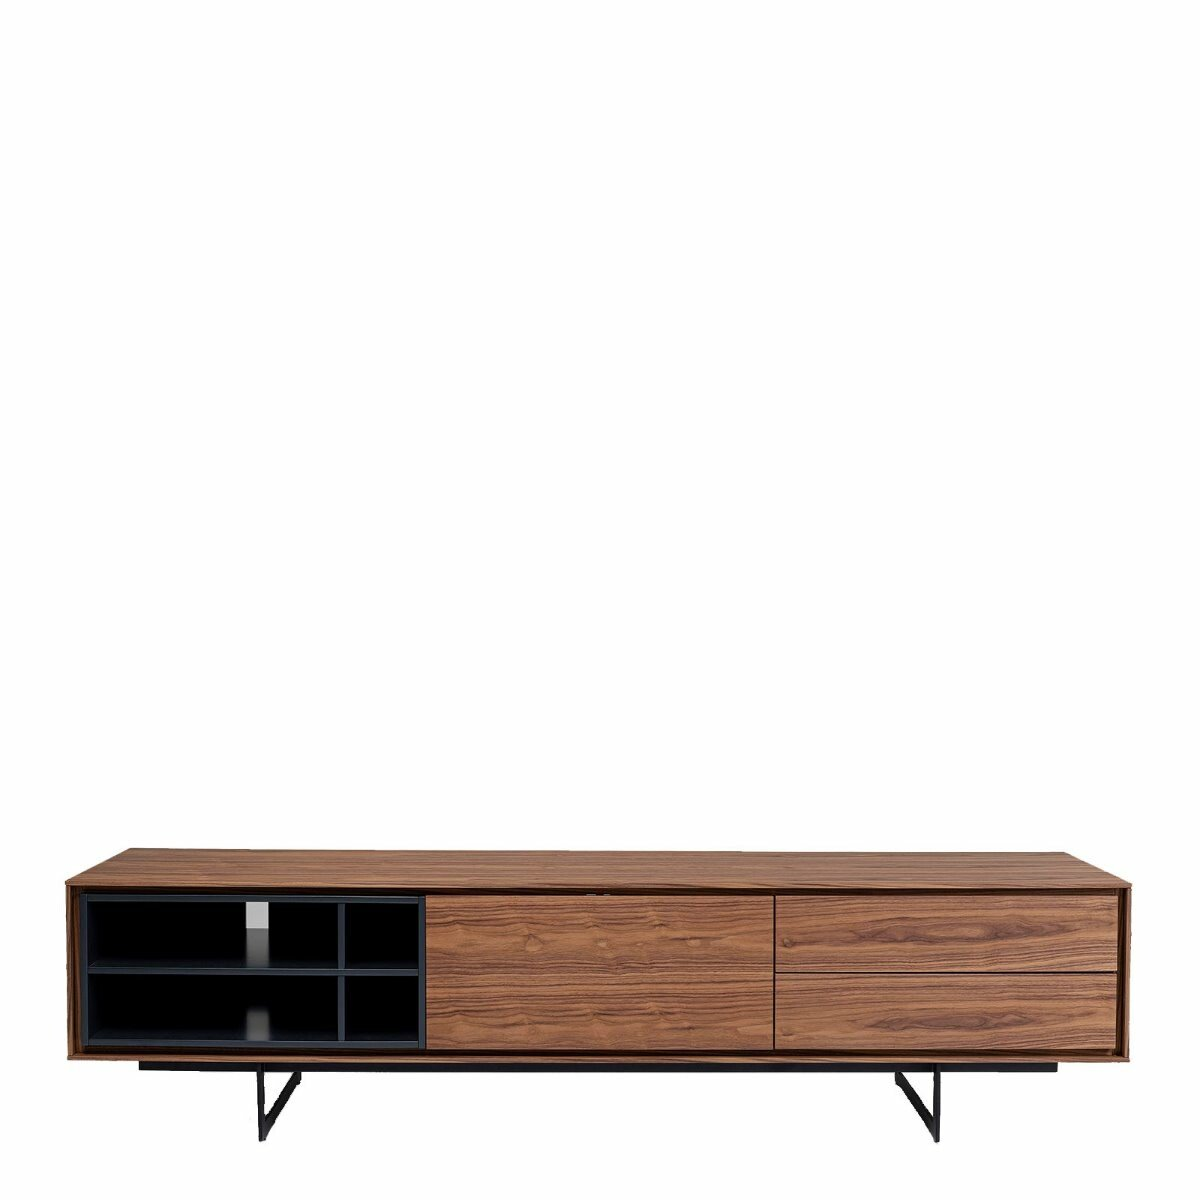 Kare Design tv meubel vivo hout 51 x 200 x 45